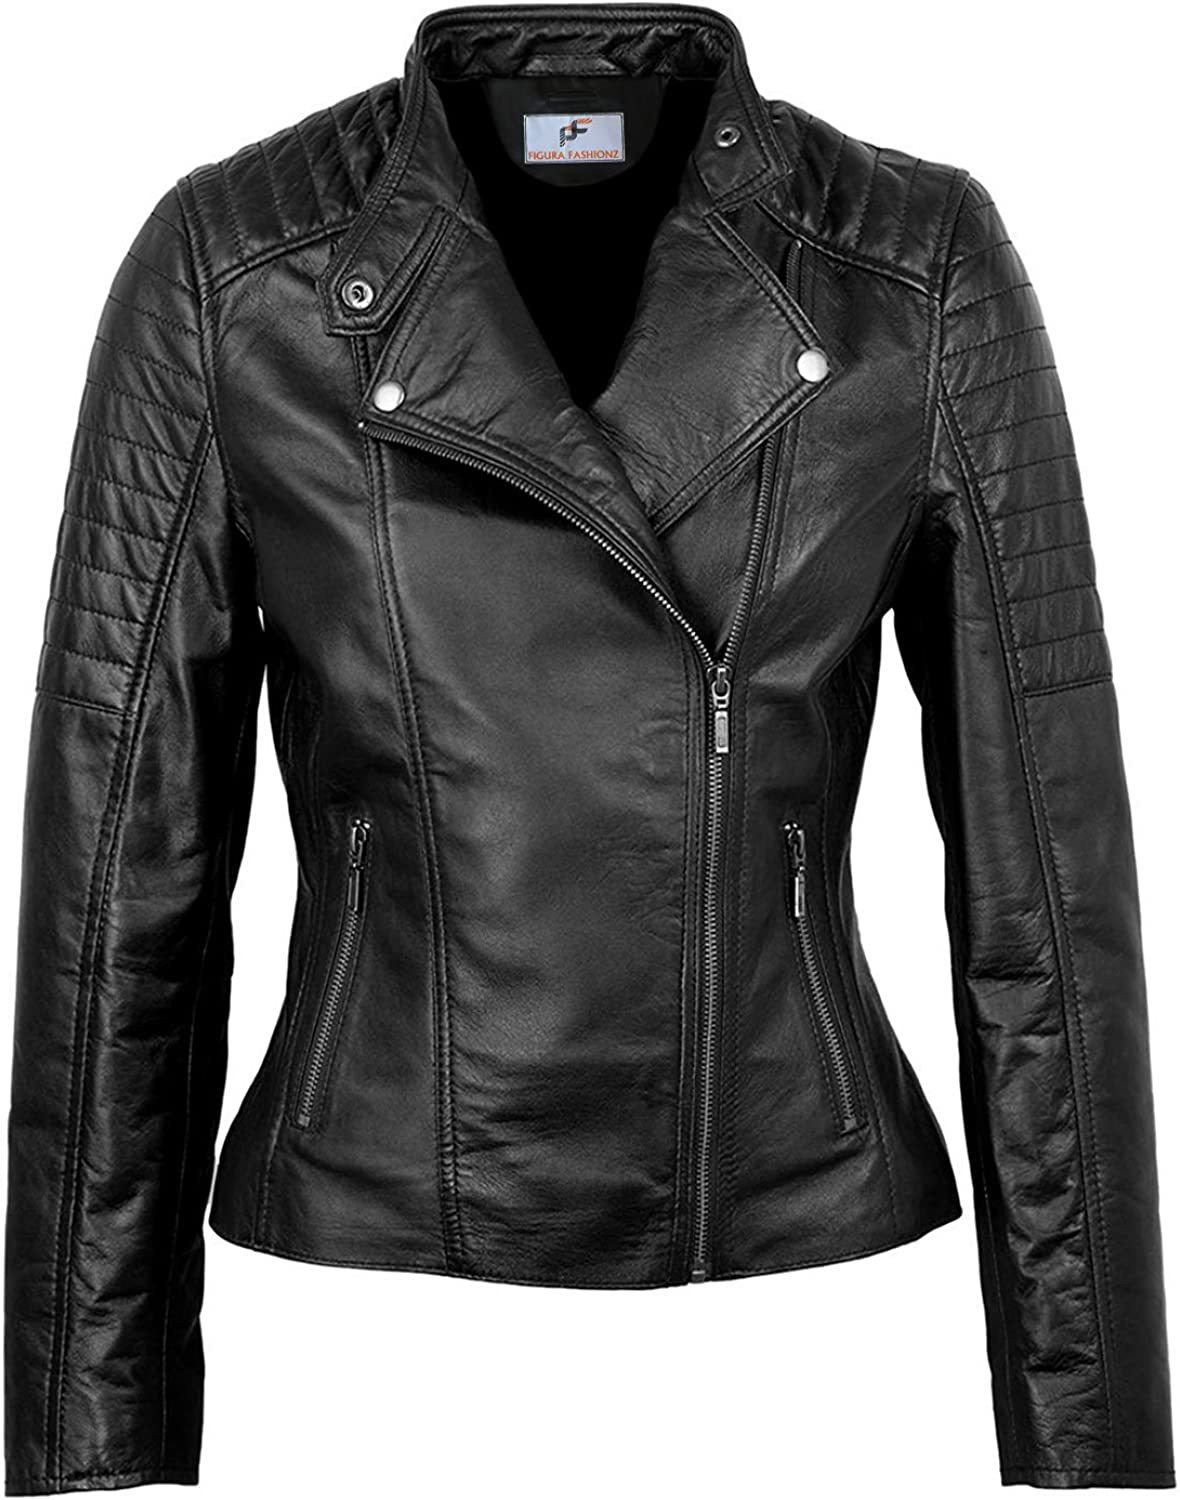 Figura Fashionz Notch Collar Quilted Faux Leather Jacket for Women - Biker Look Black Faux Leather Jacket for Women